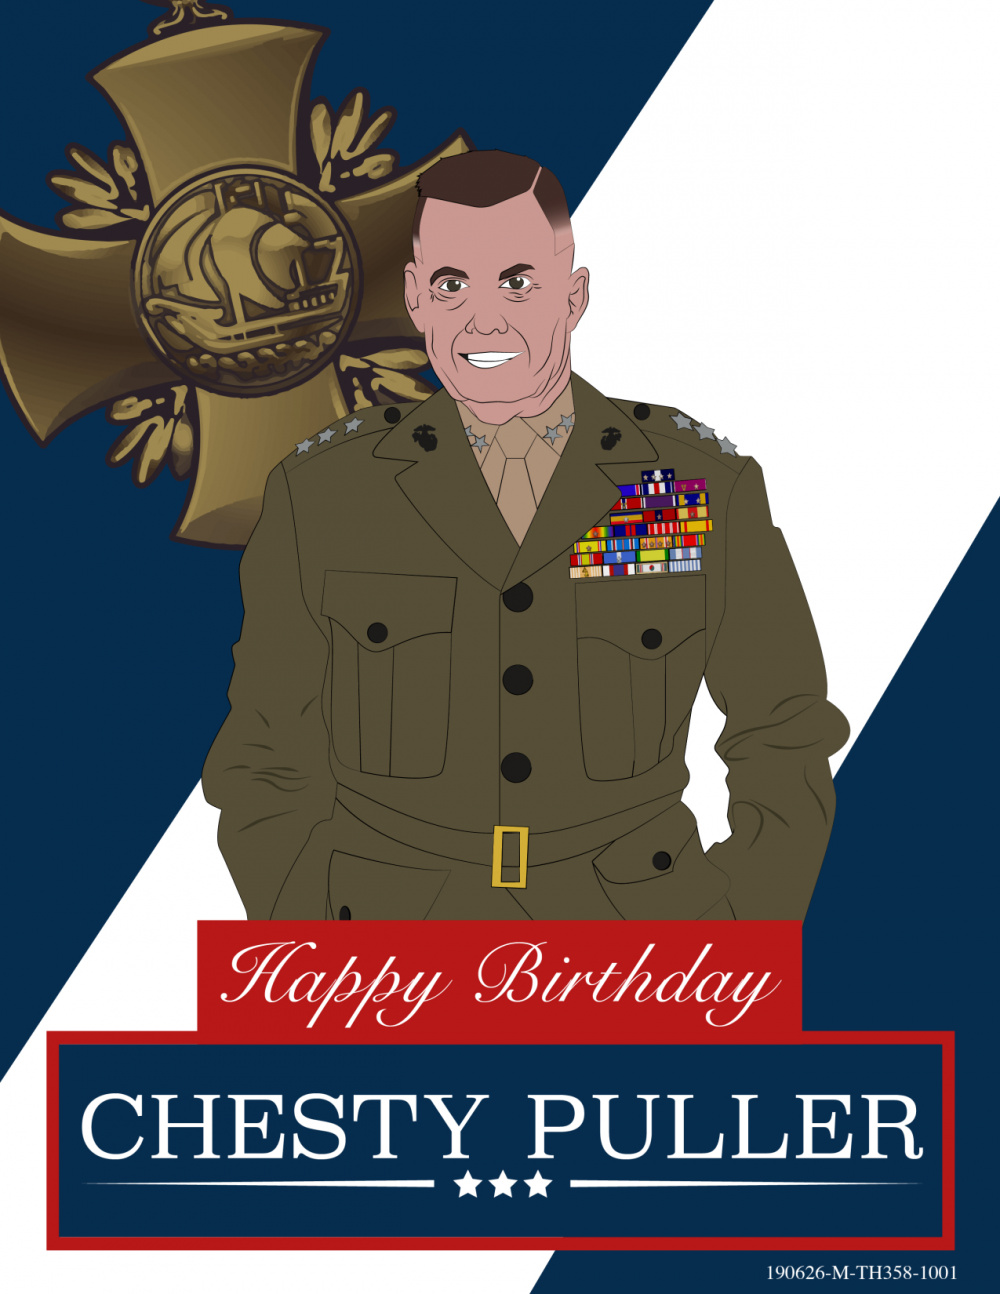 Chesty Puller's 121st Birthday Graphic